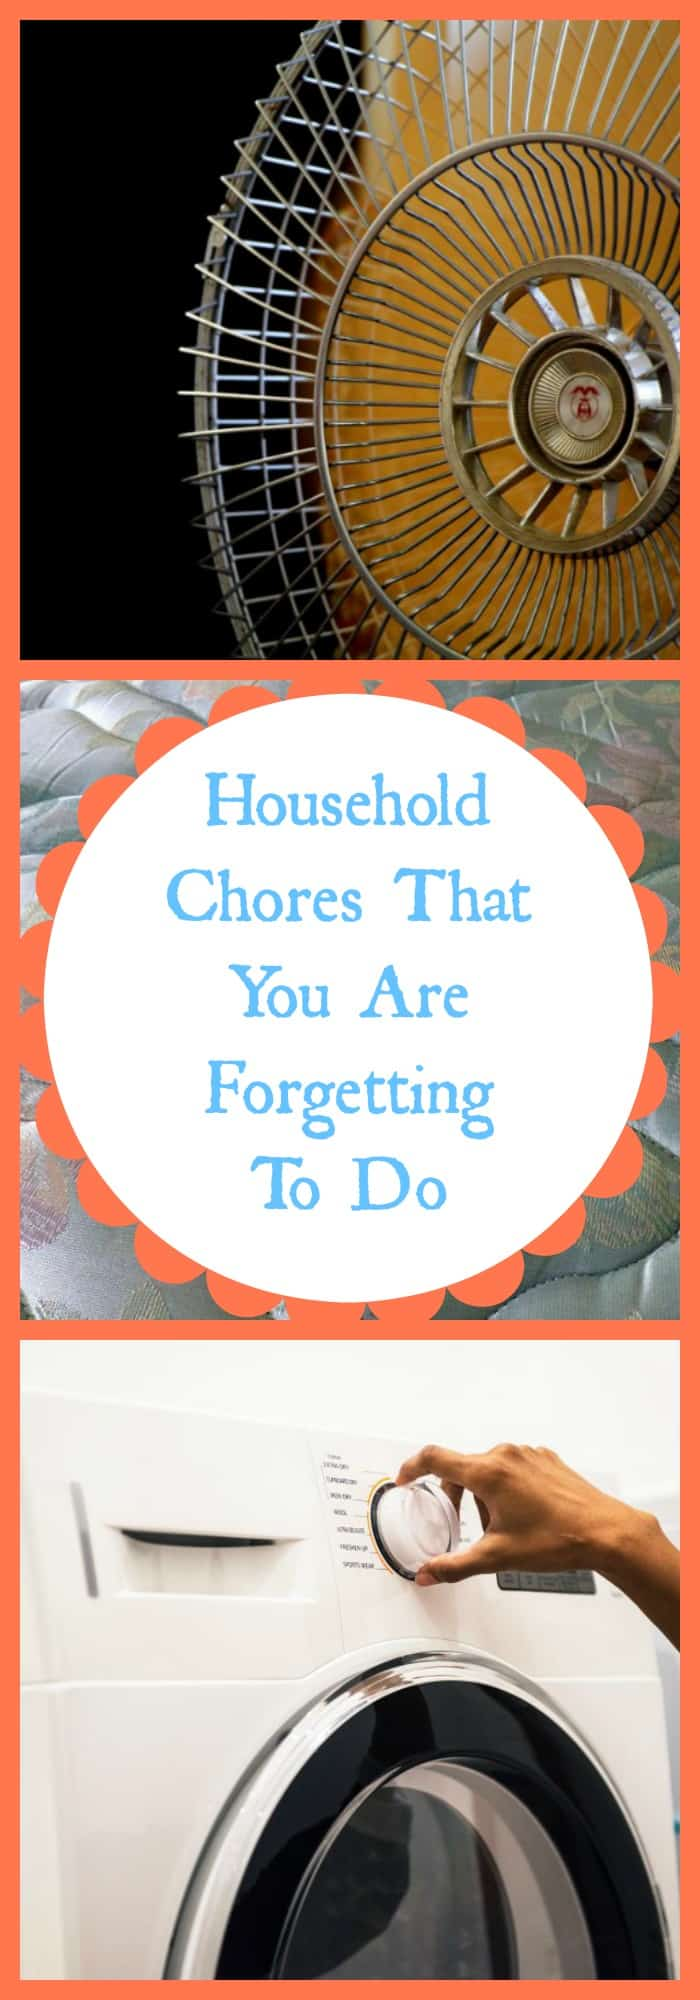 Household Chores That You Are Forgetting To Do